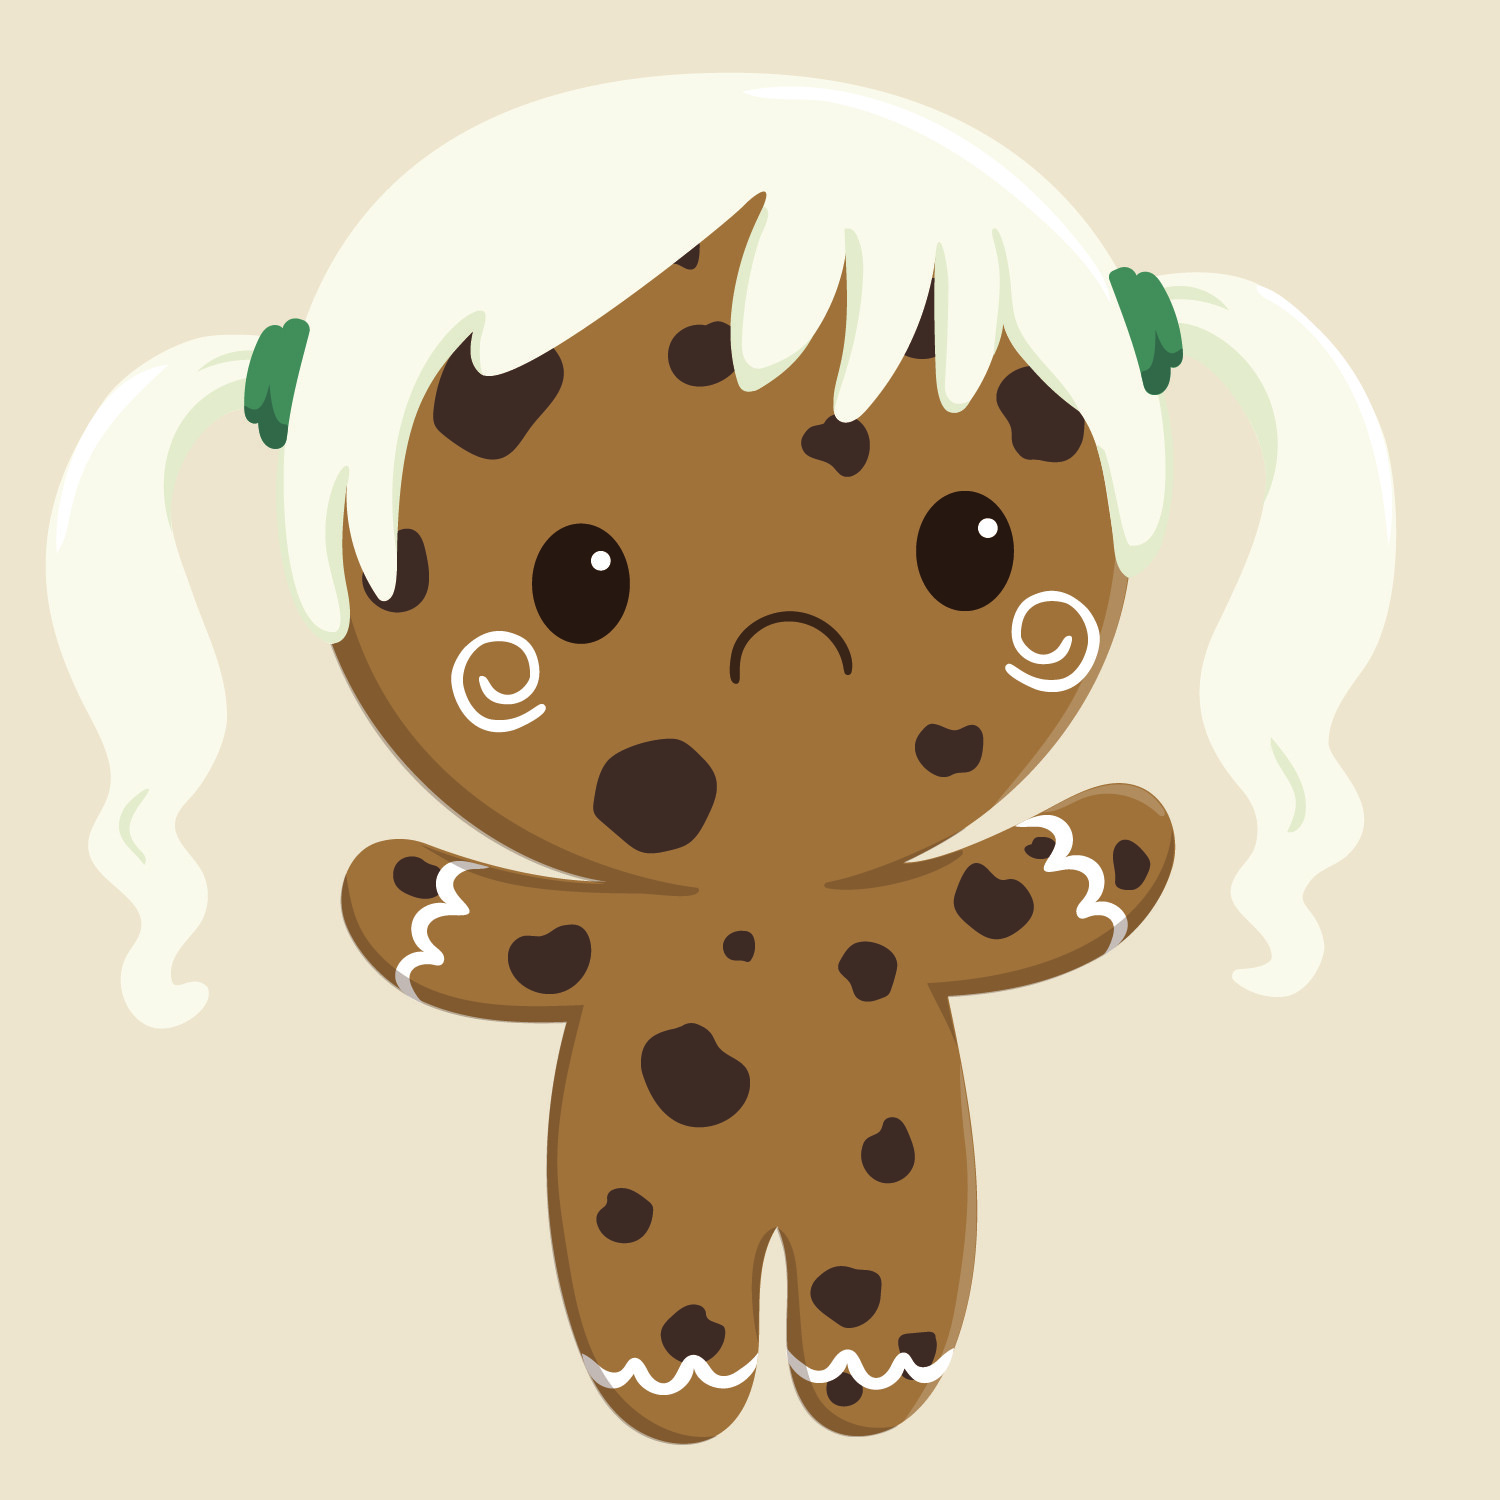 chocolate cookie body